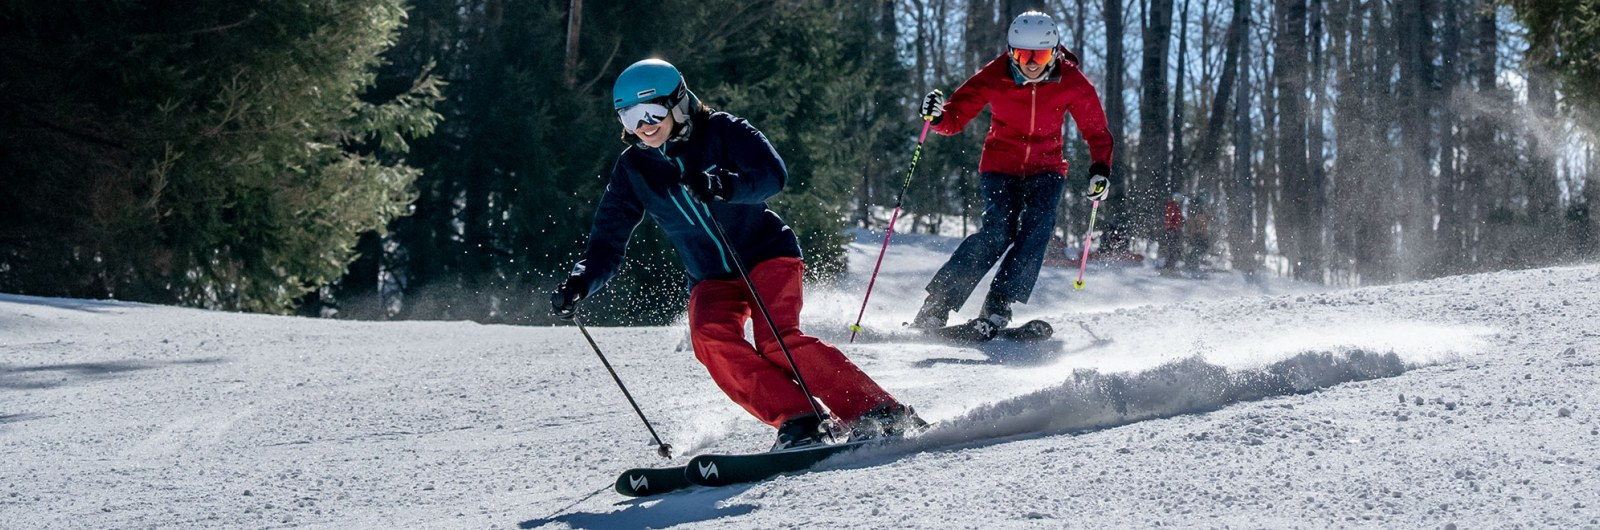 Women carving down the ski mountain at Holiday Valley resort in New York